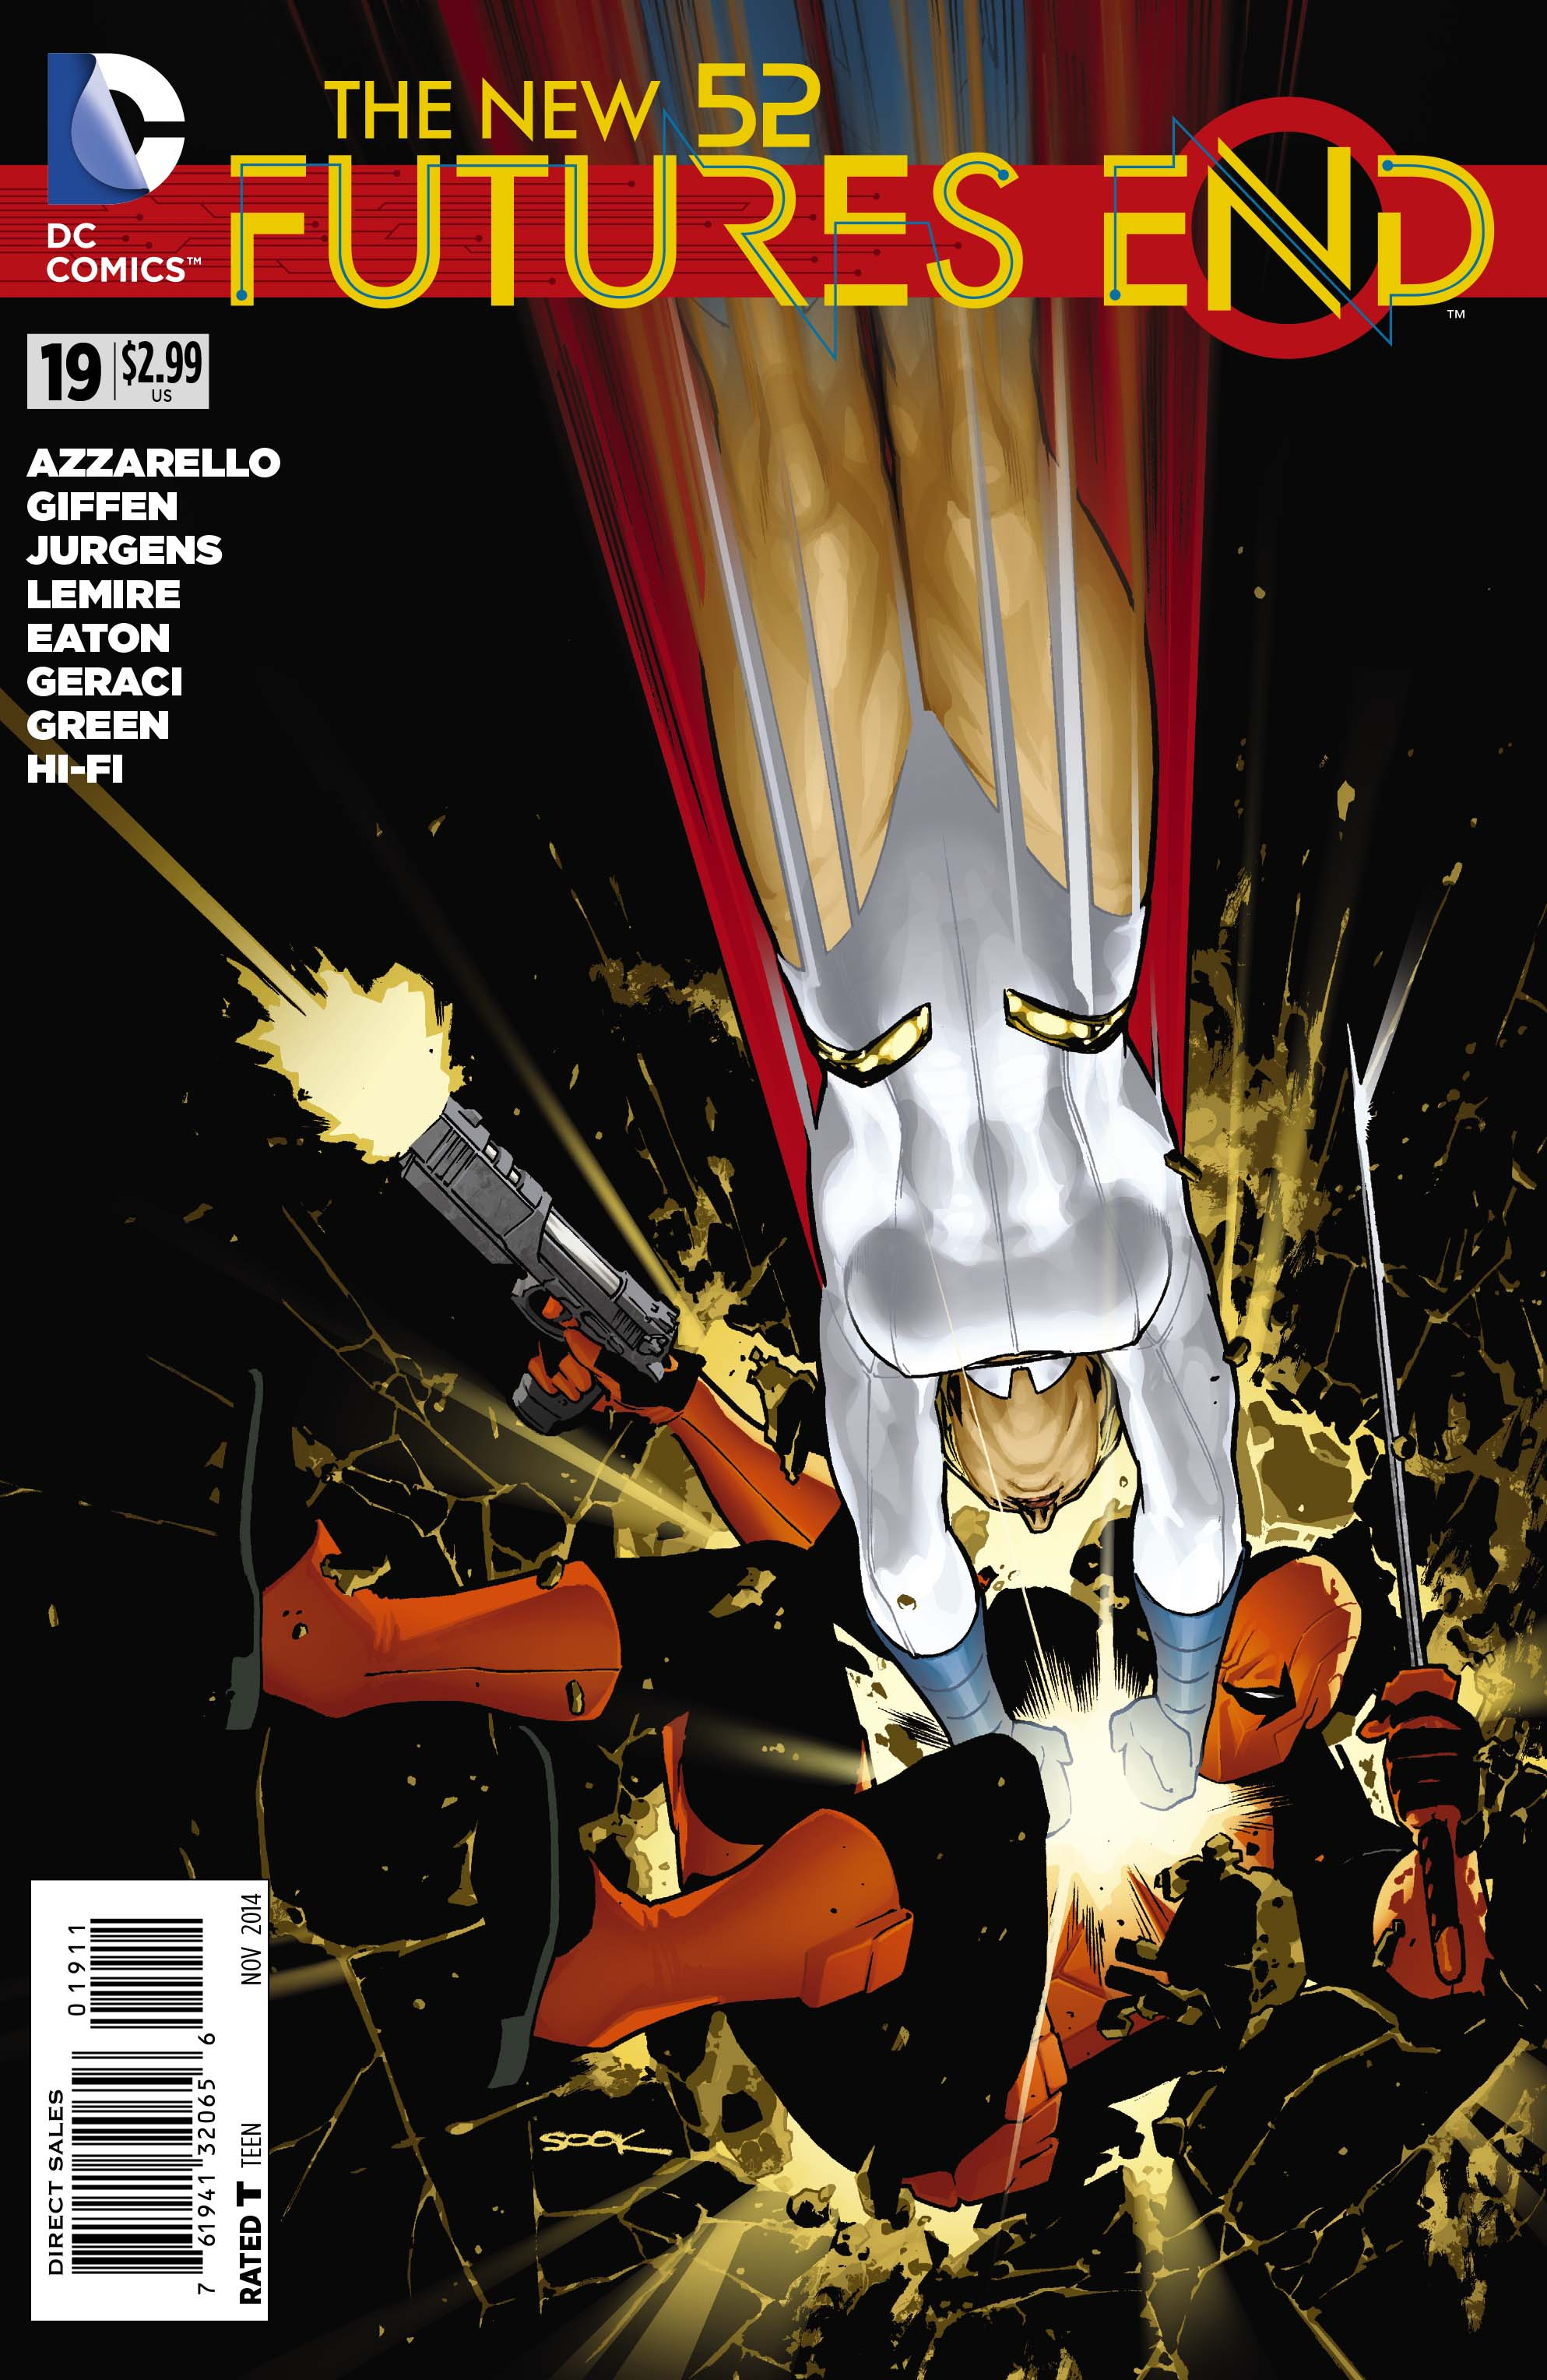 The New 52: Futures End Vol 1 19